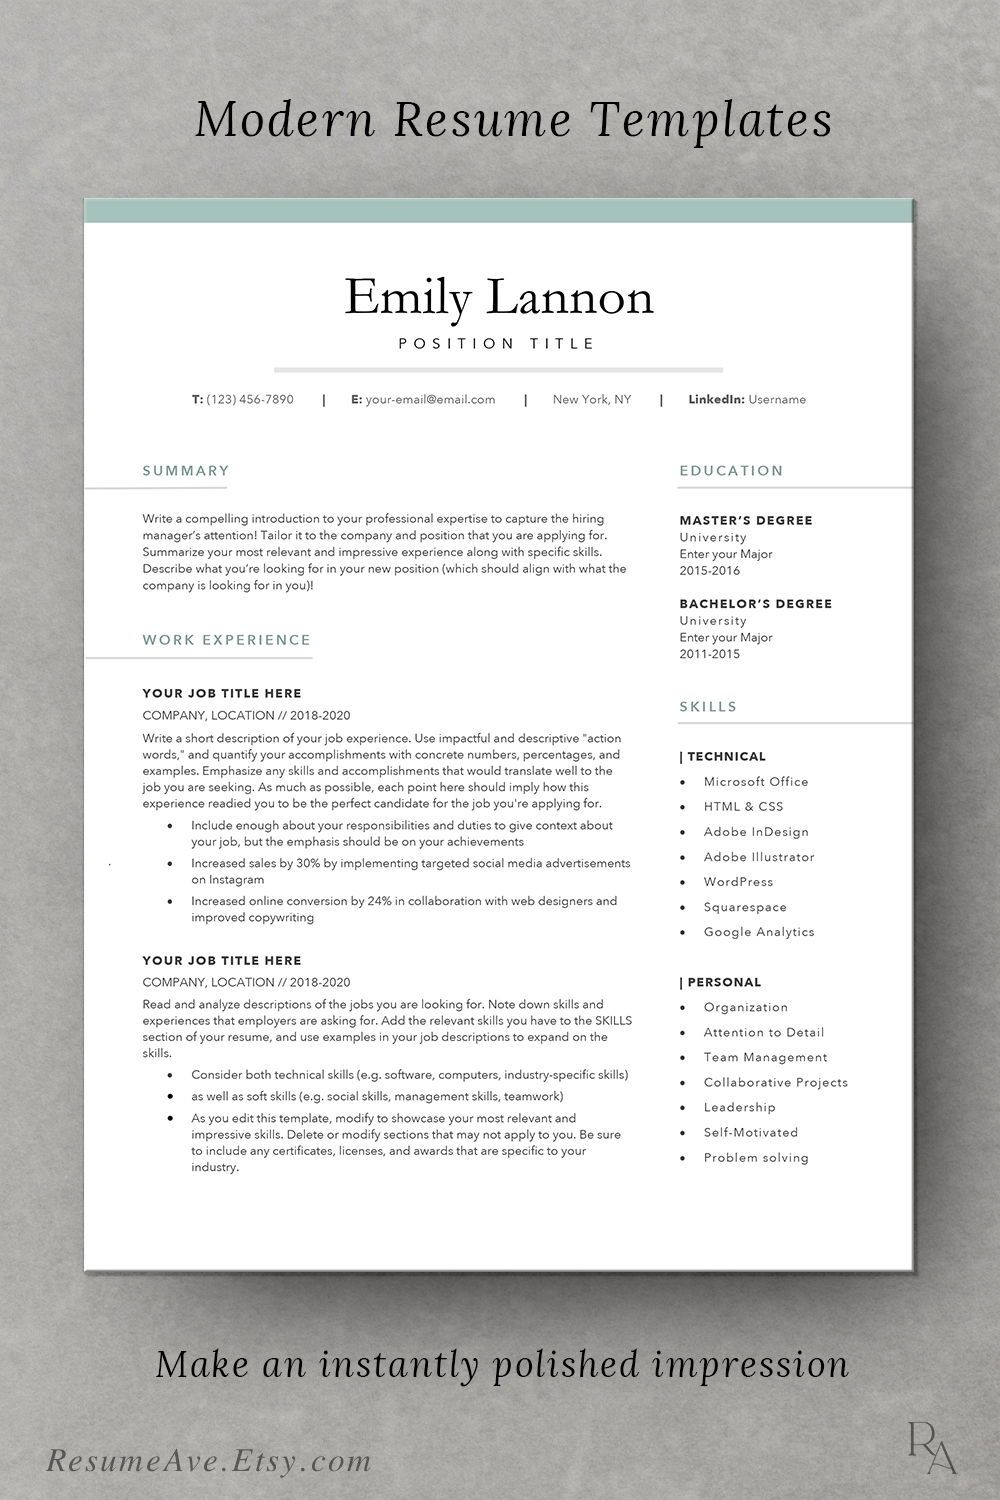 Feminine Resume Template Word With Green Border Simple Design Etsy Resume Template Word Resume Template Teacher Resume Template